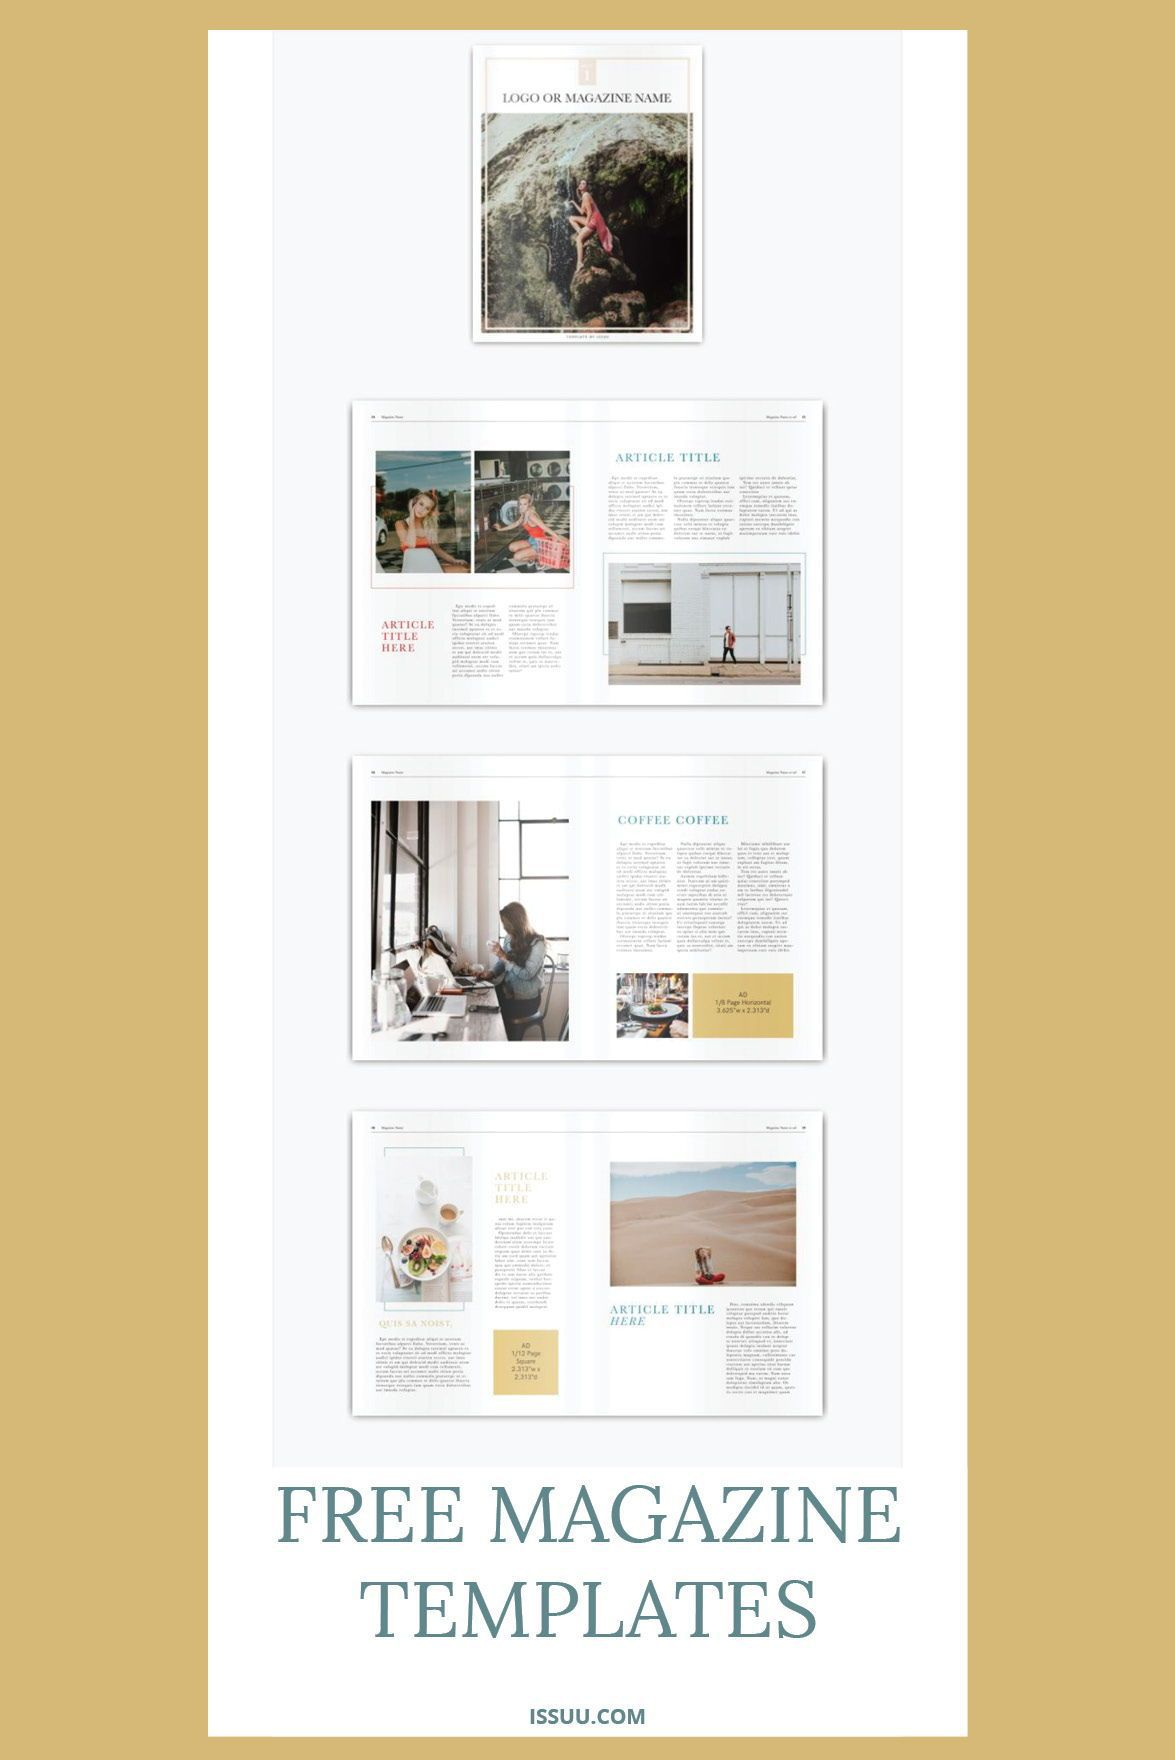 001 Breathtaking Free Magazine Layout Template Design  Templates For Word Microsoft PowerpointFull